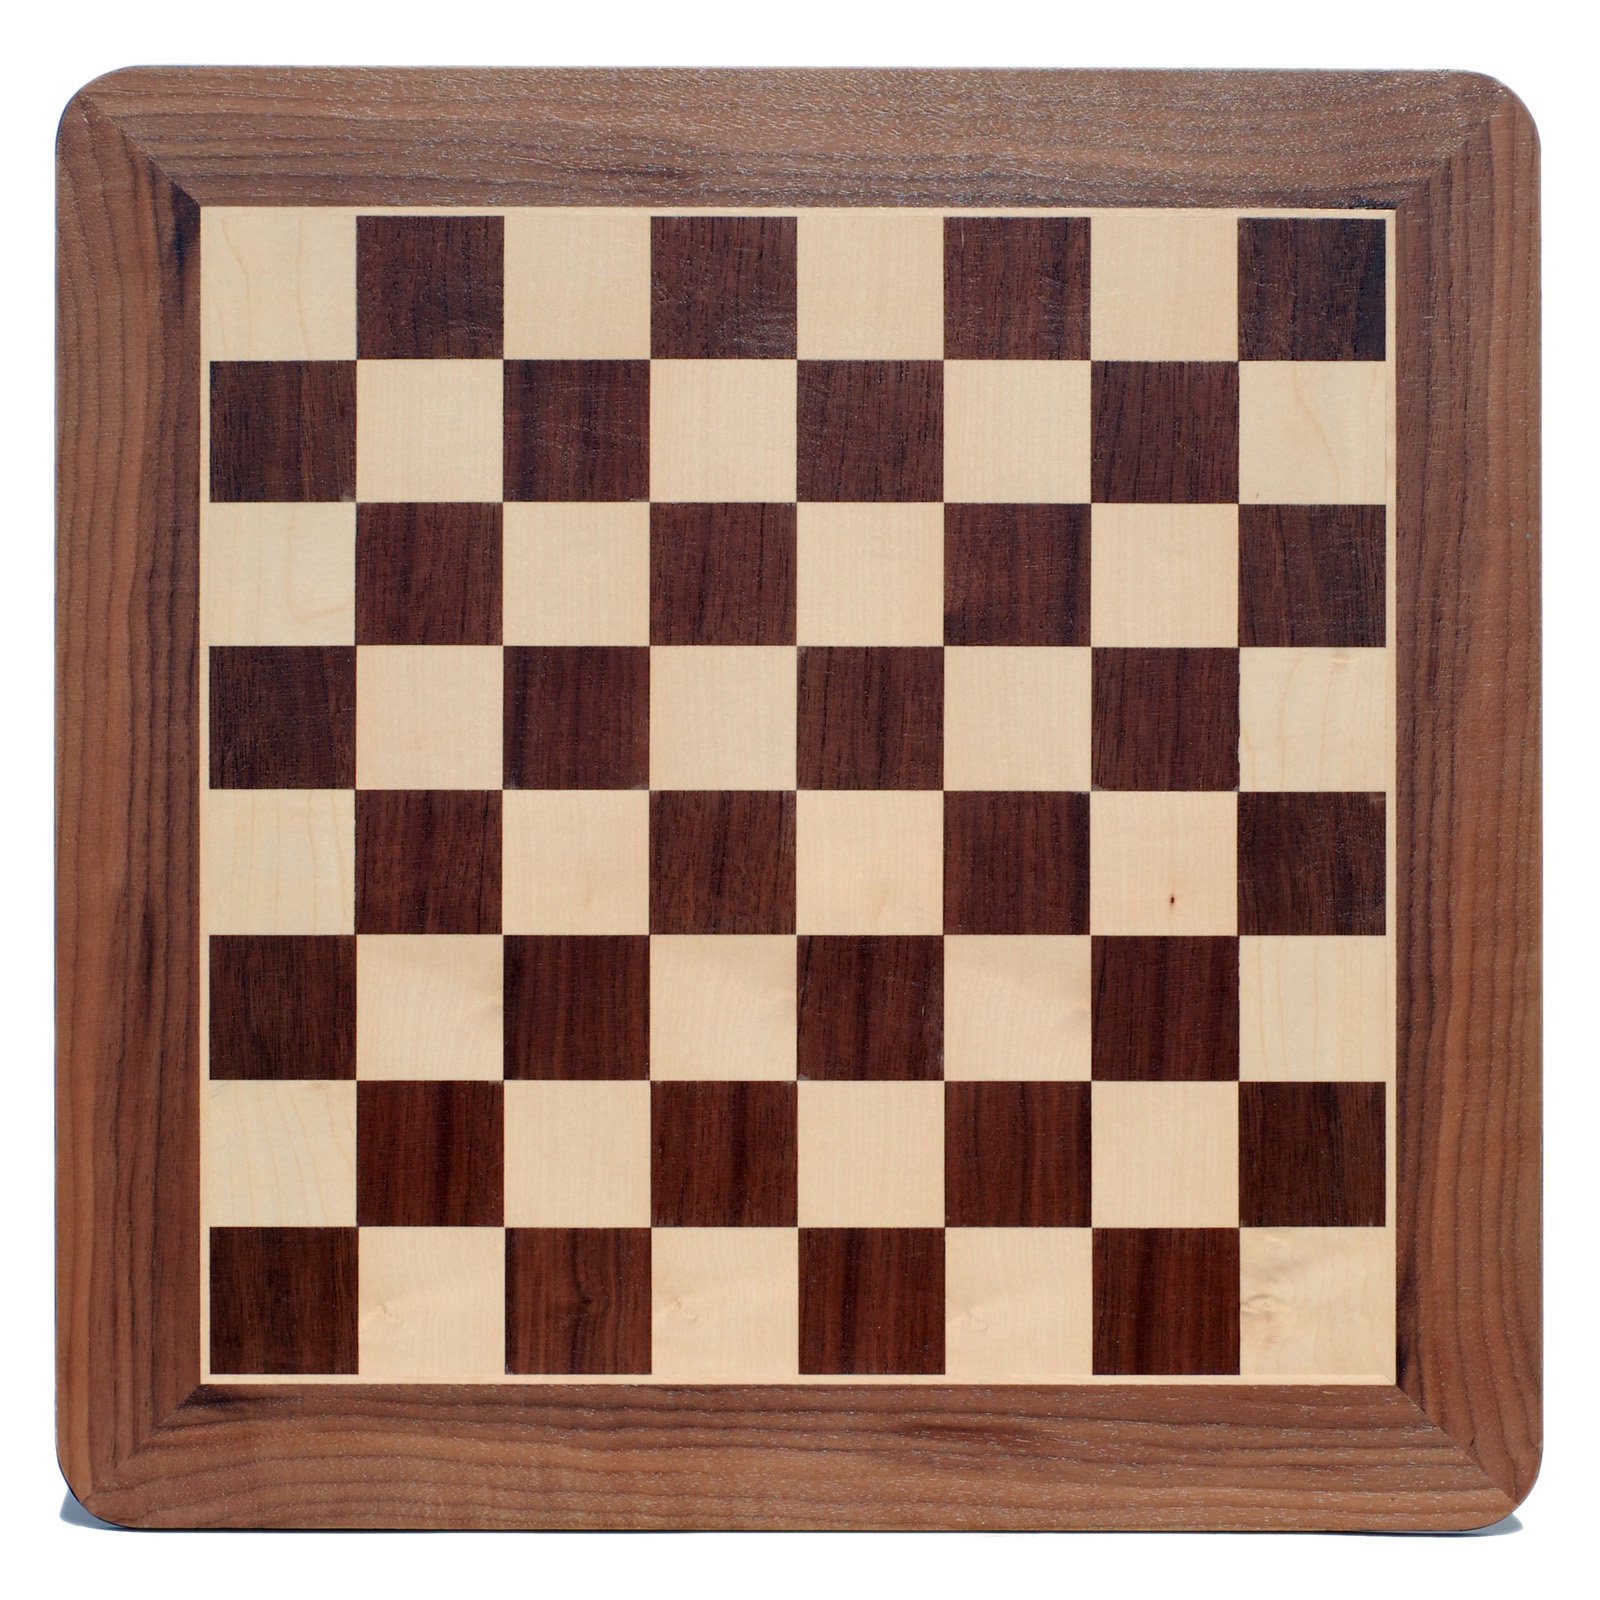 WE Games 19 in. Walnut Chessboard with Inlay Border and Rounded Corners